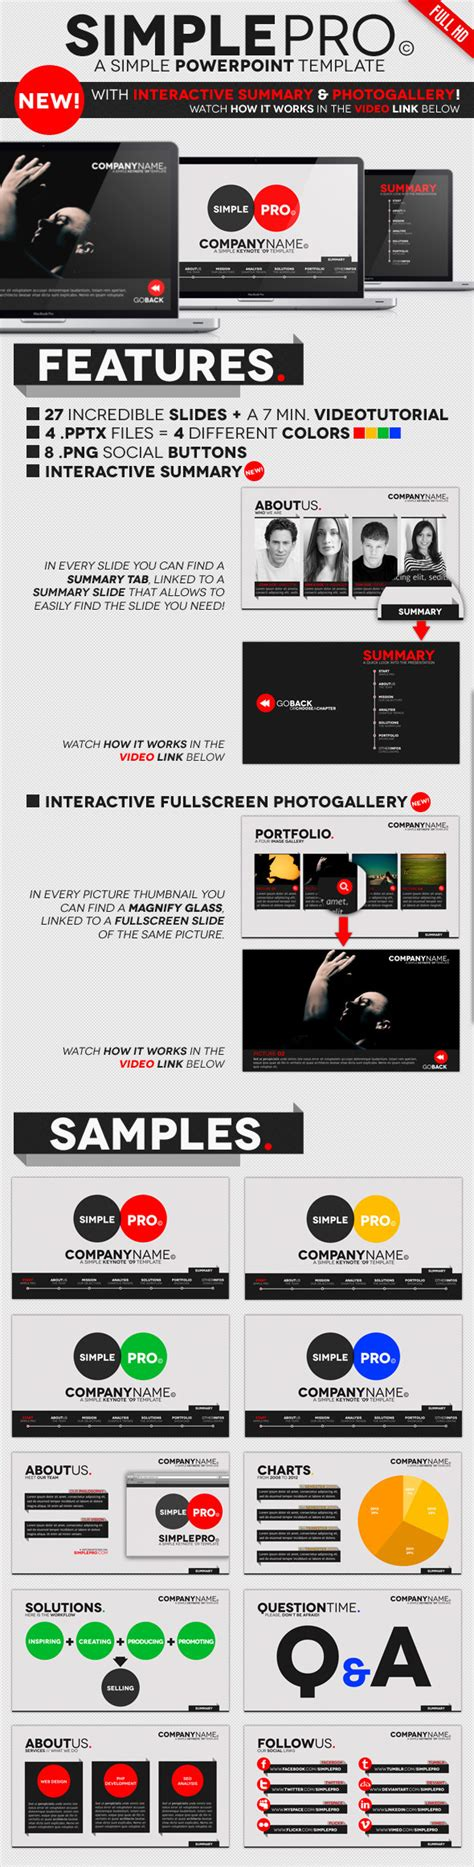 Simple Pro Powerpoint Interactive Template By Opendept Graphicriver Powerpoint Interactive Templates